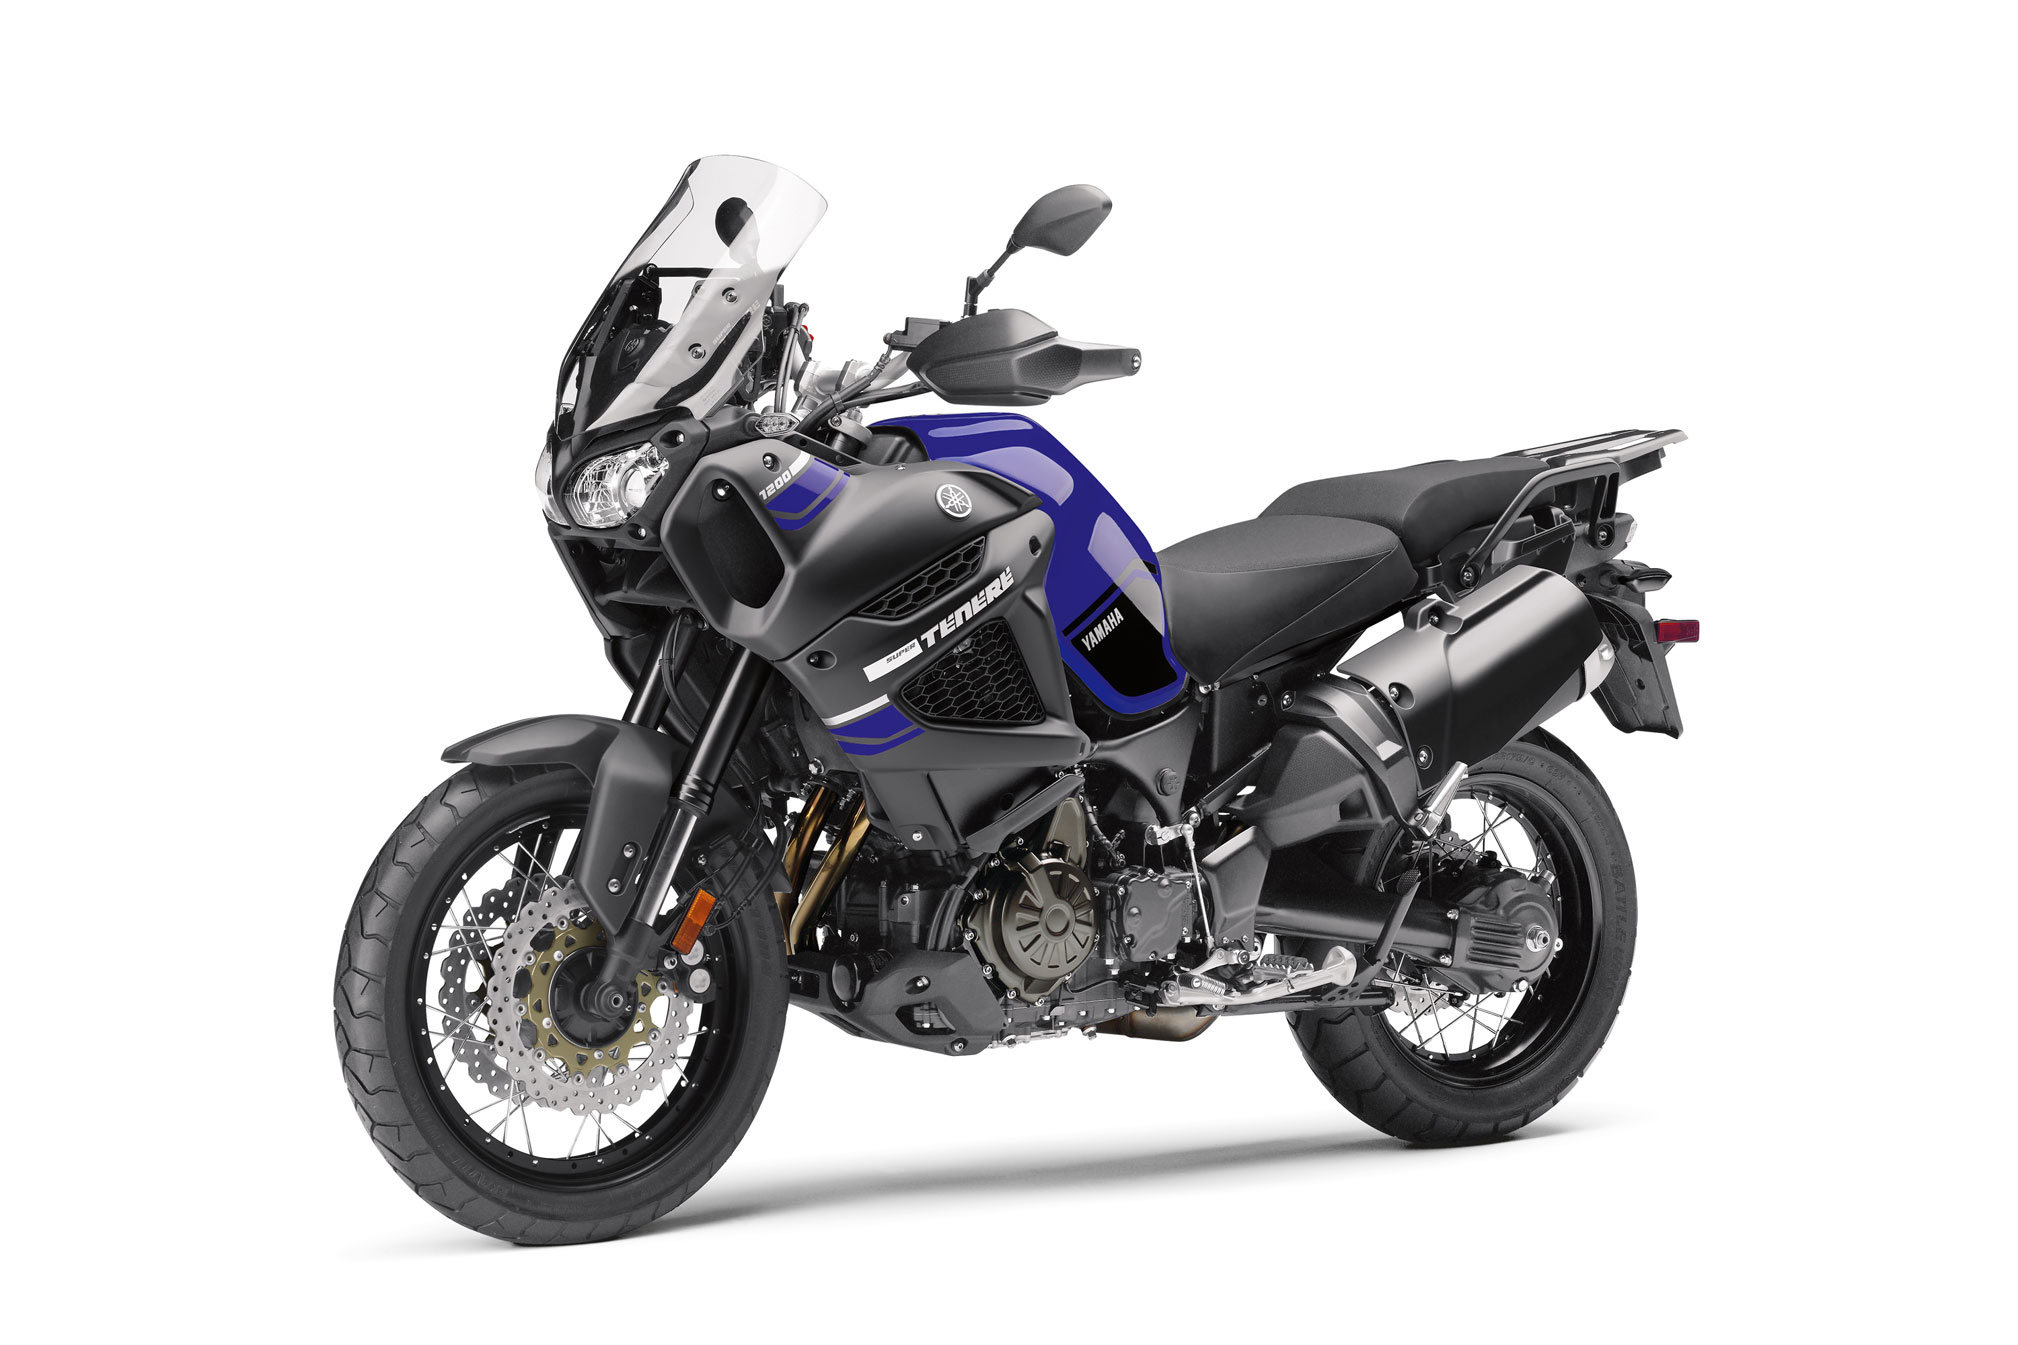 2018 yamaha super tenere review totalmotorcycle for Yamaha tenere 700